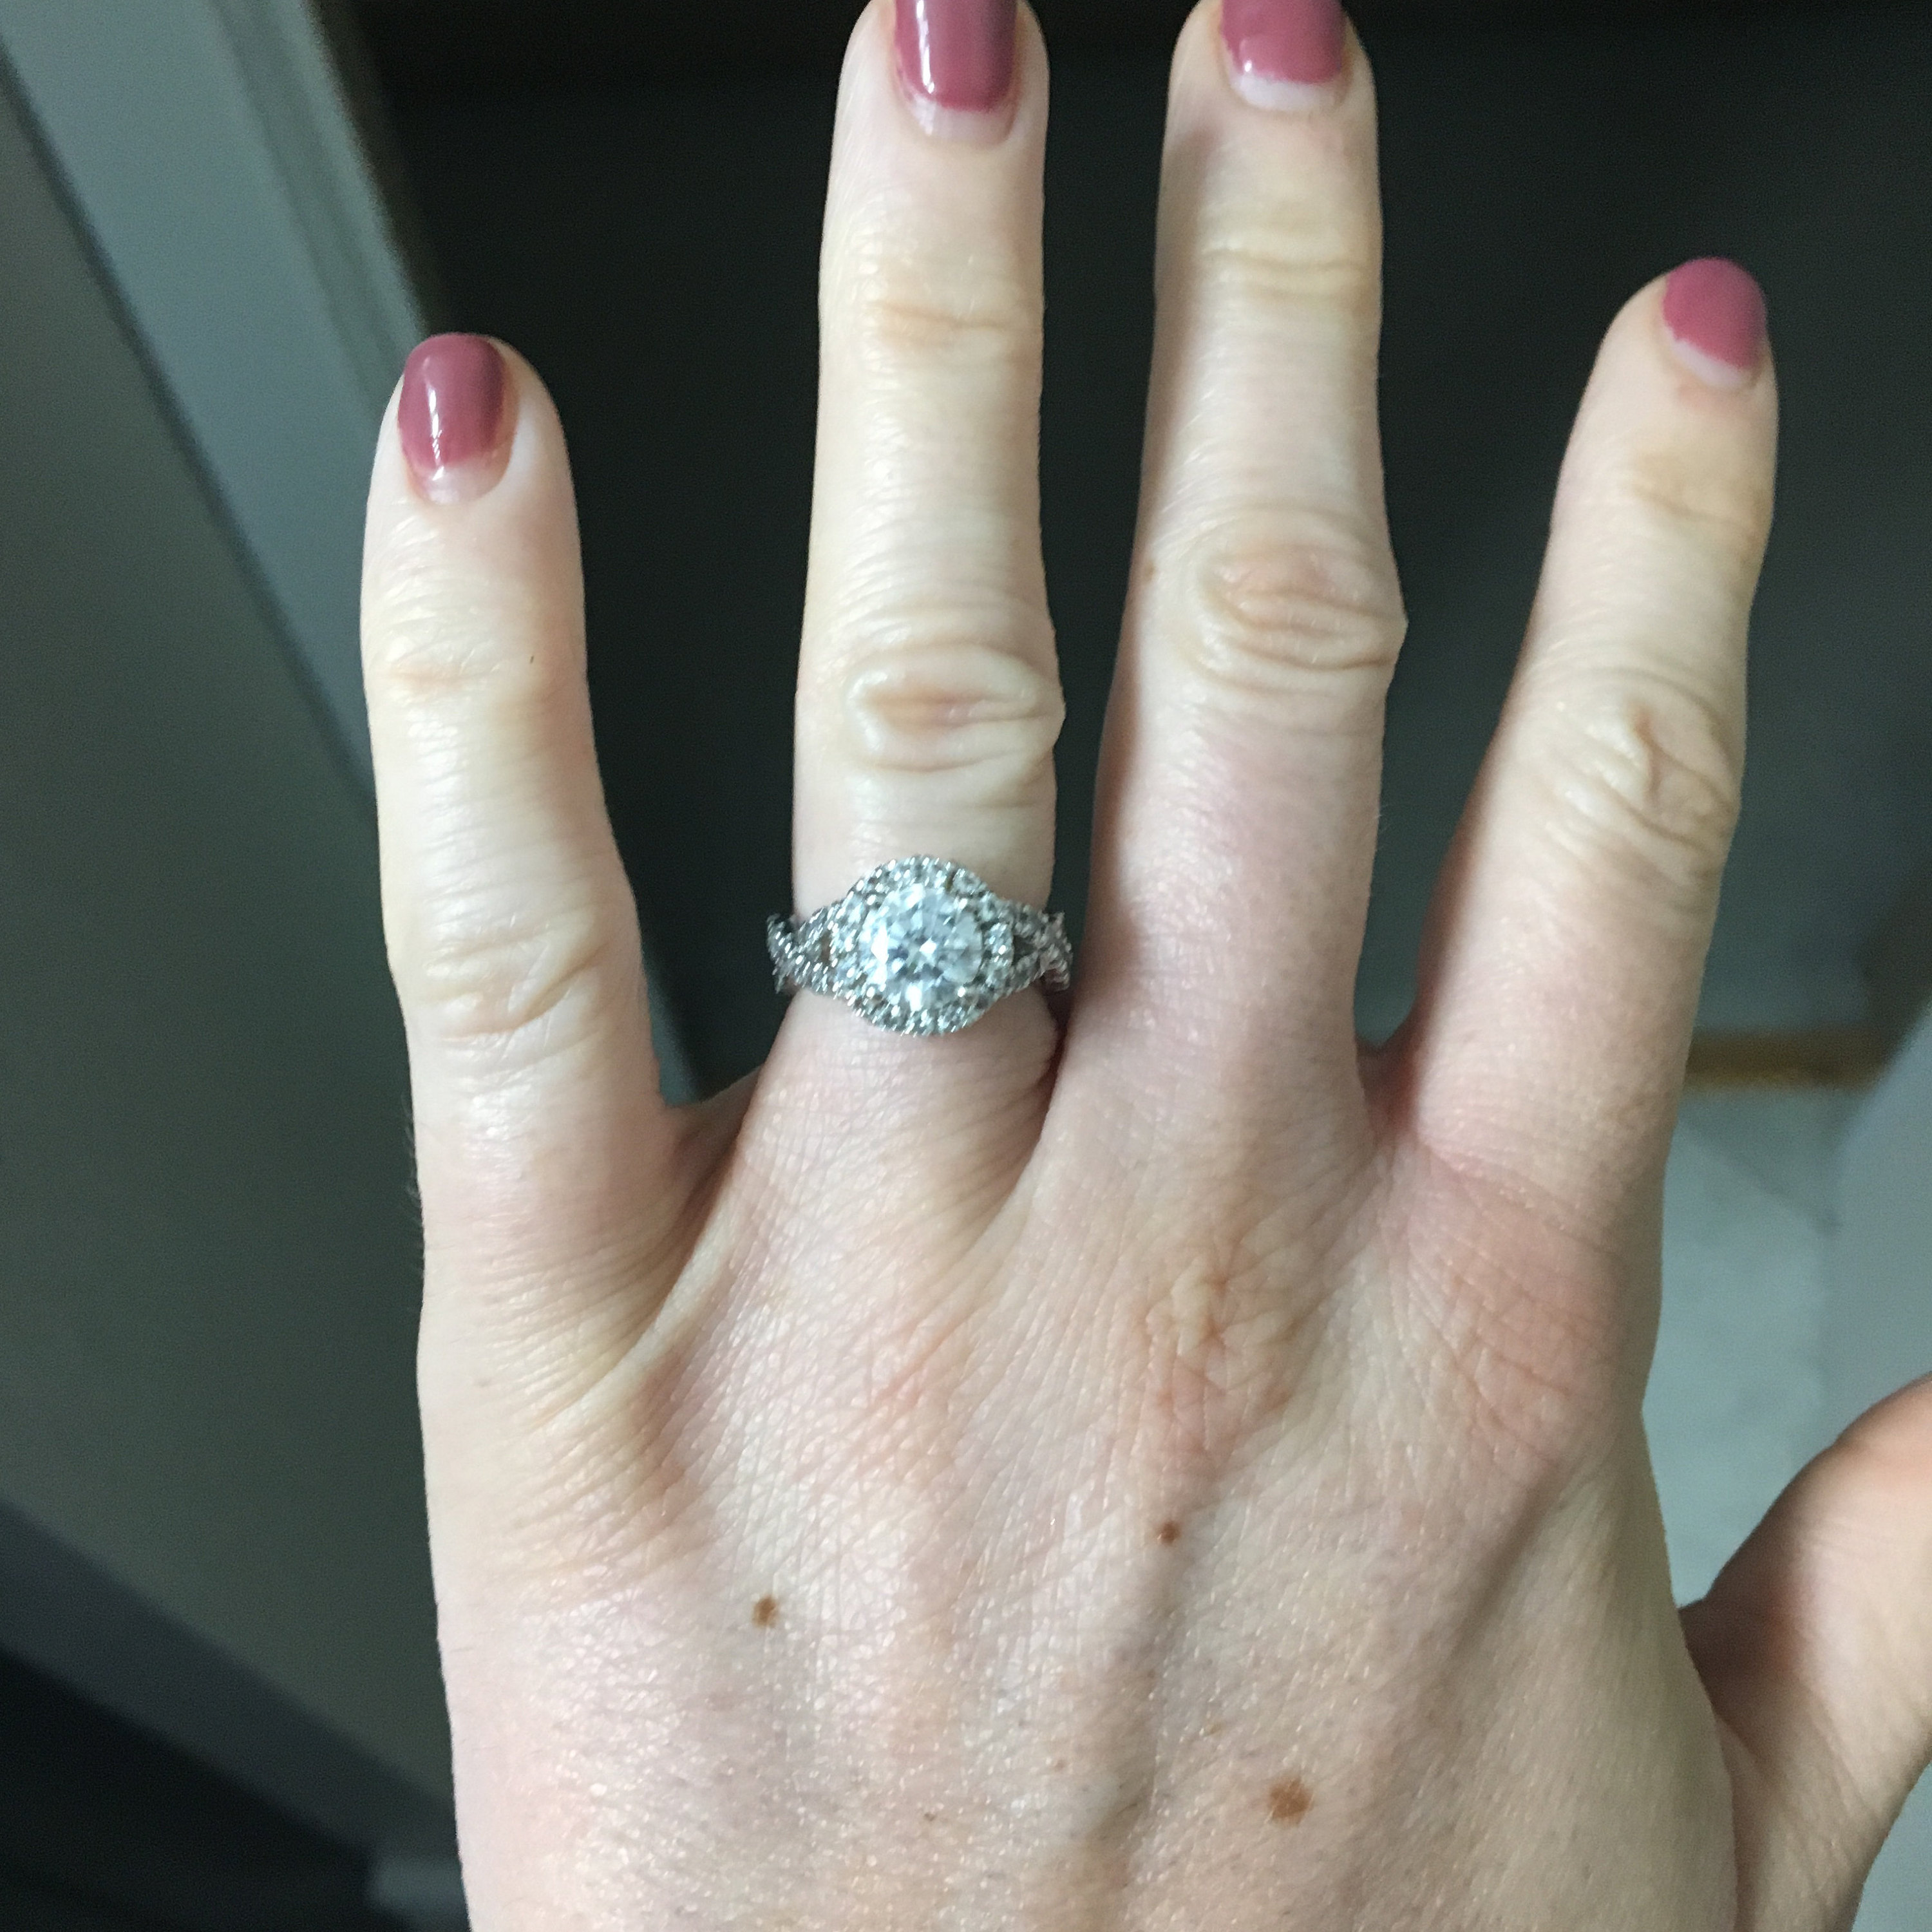 Tracy Rockhold added a photo of their purchase